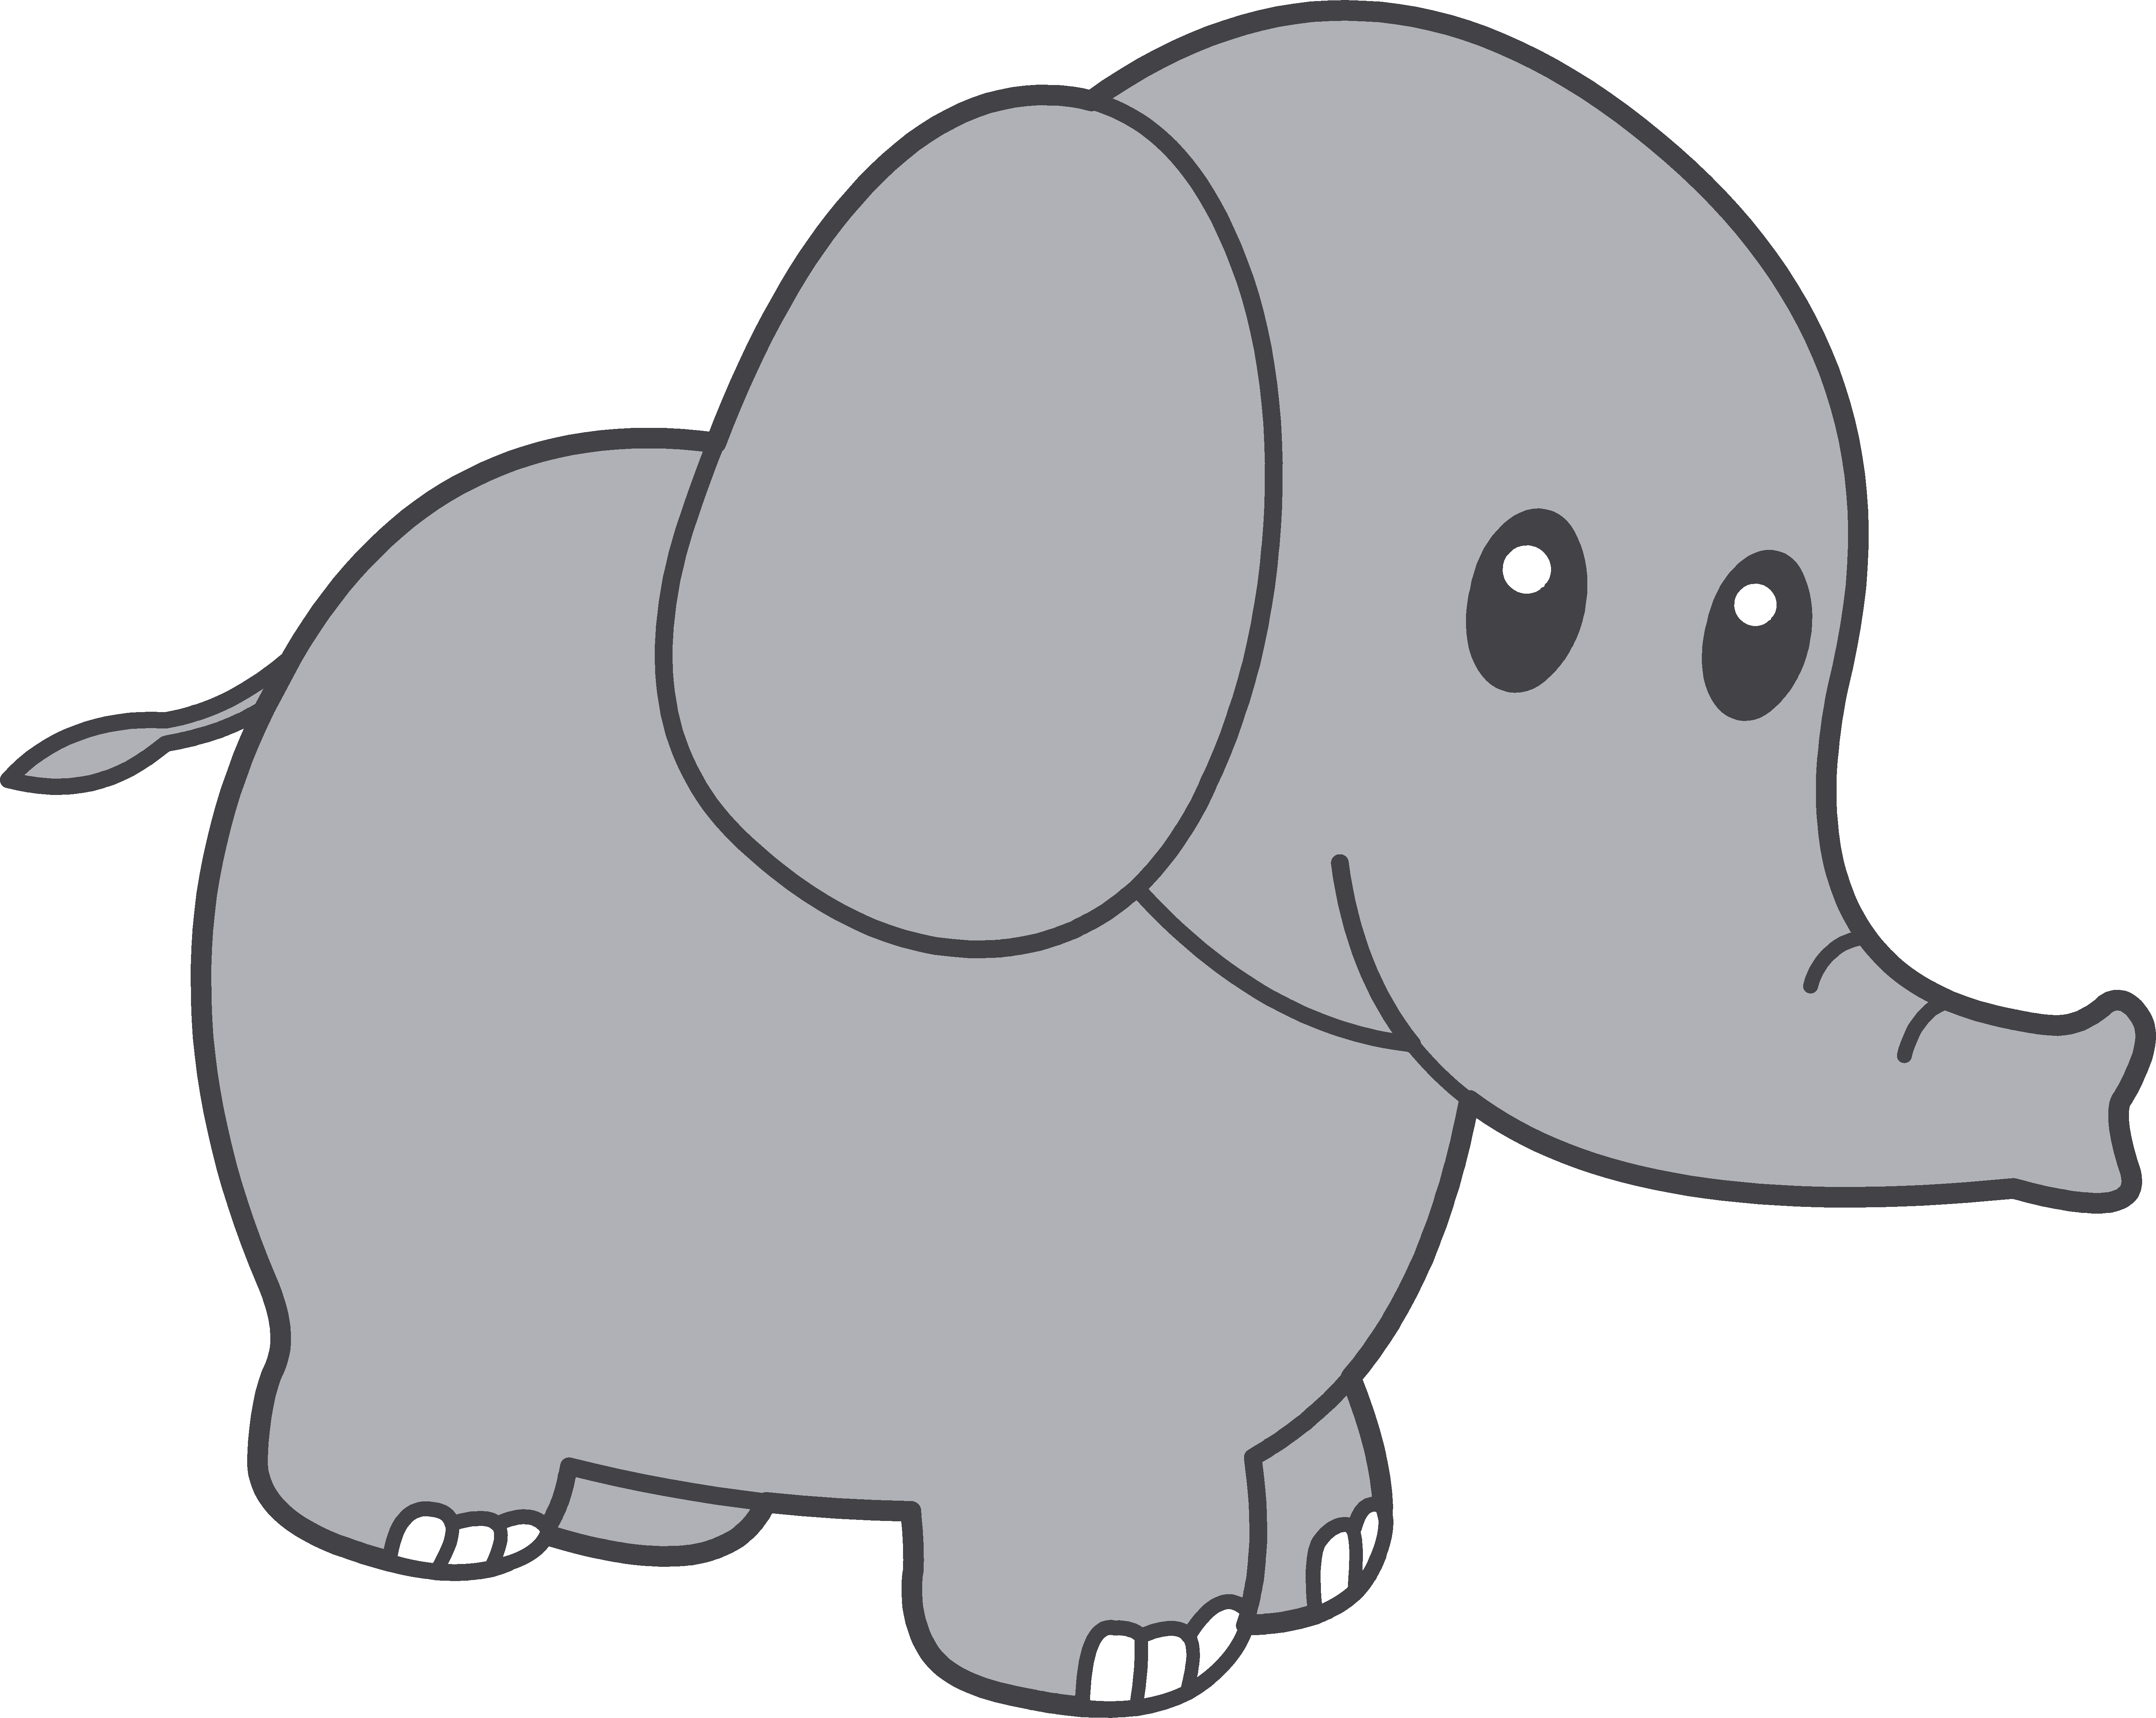 Free elephants images download. Elephant clip art elephent jpg library library